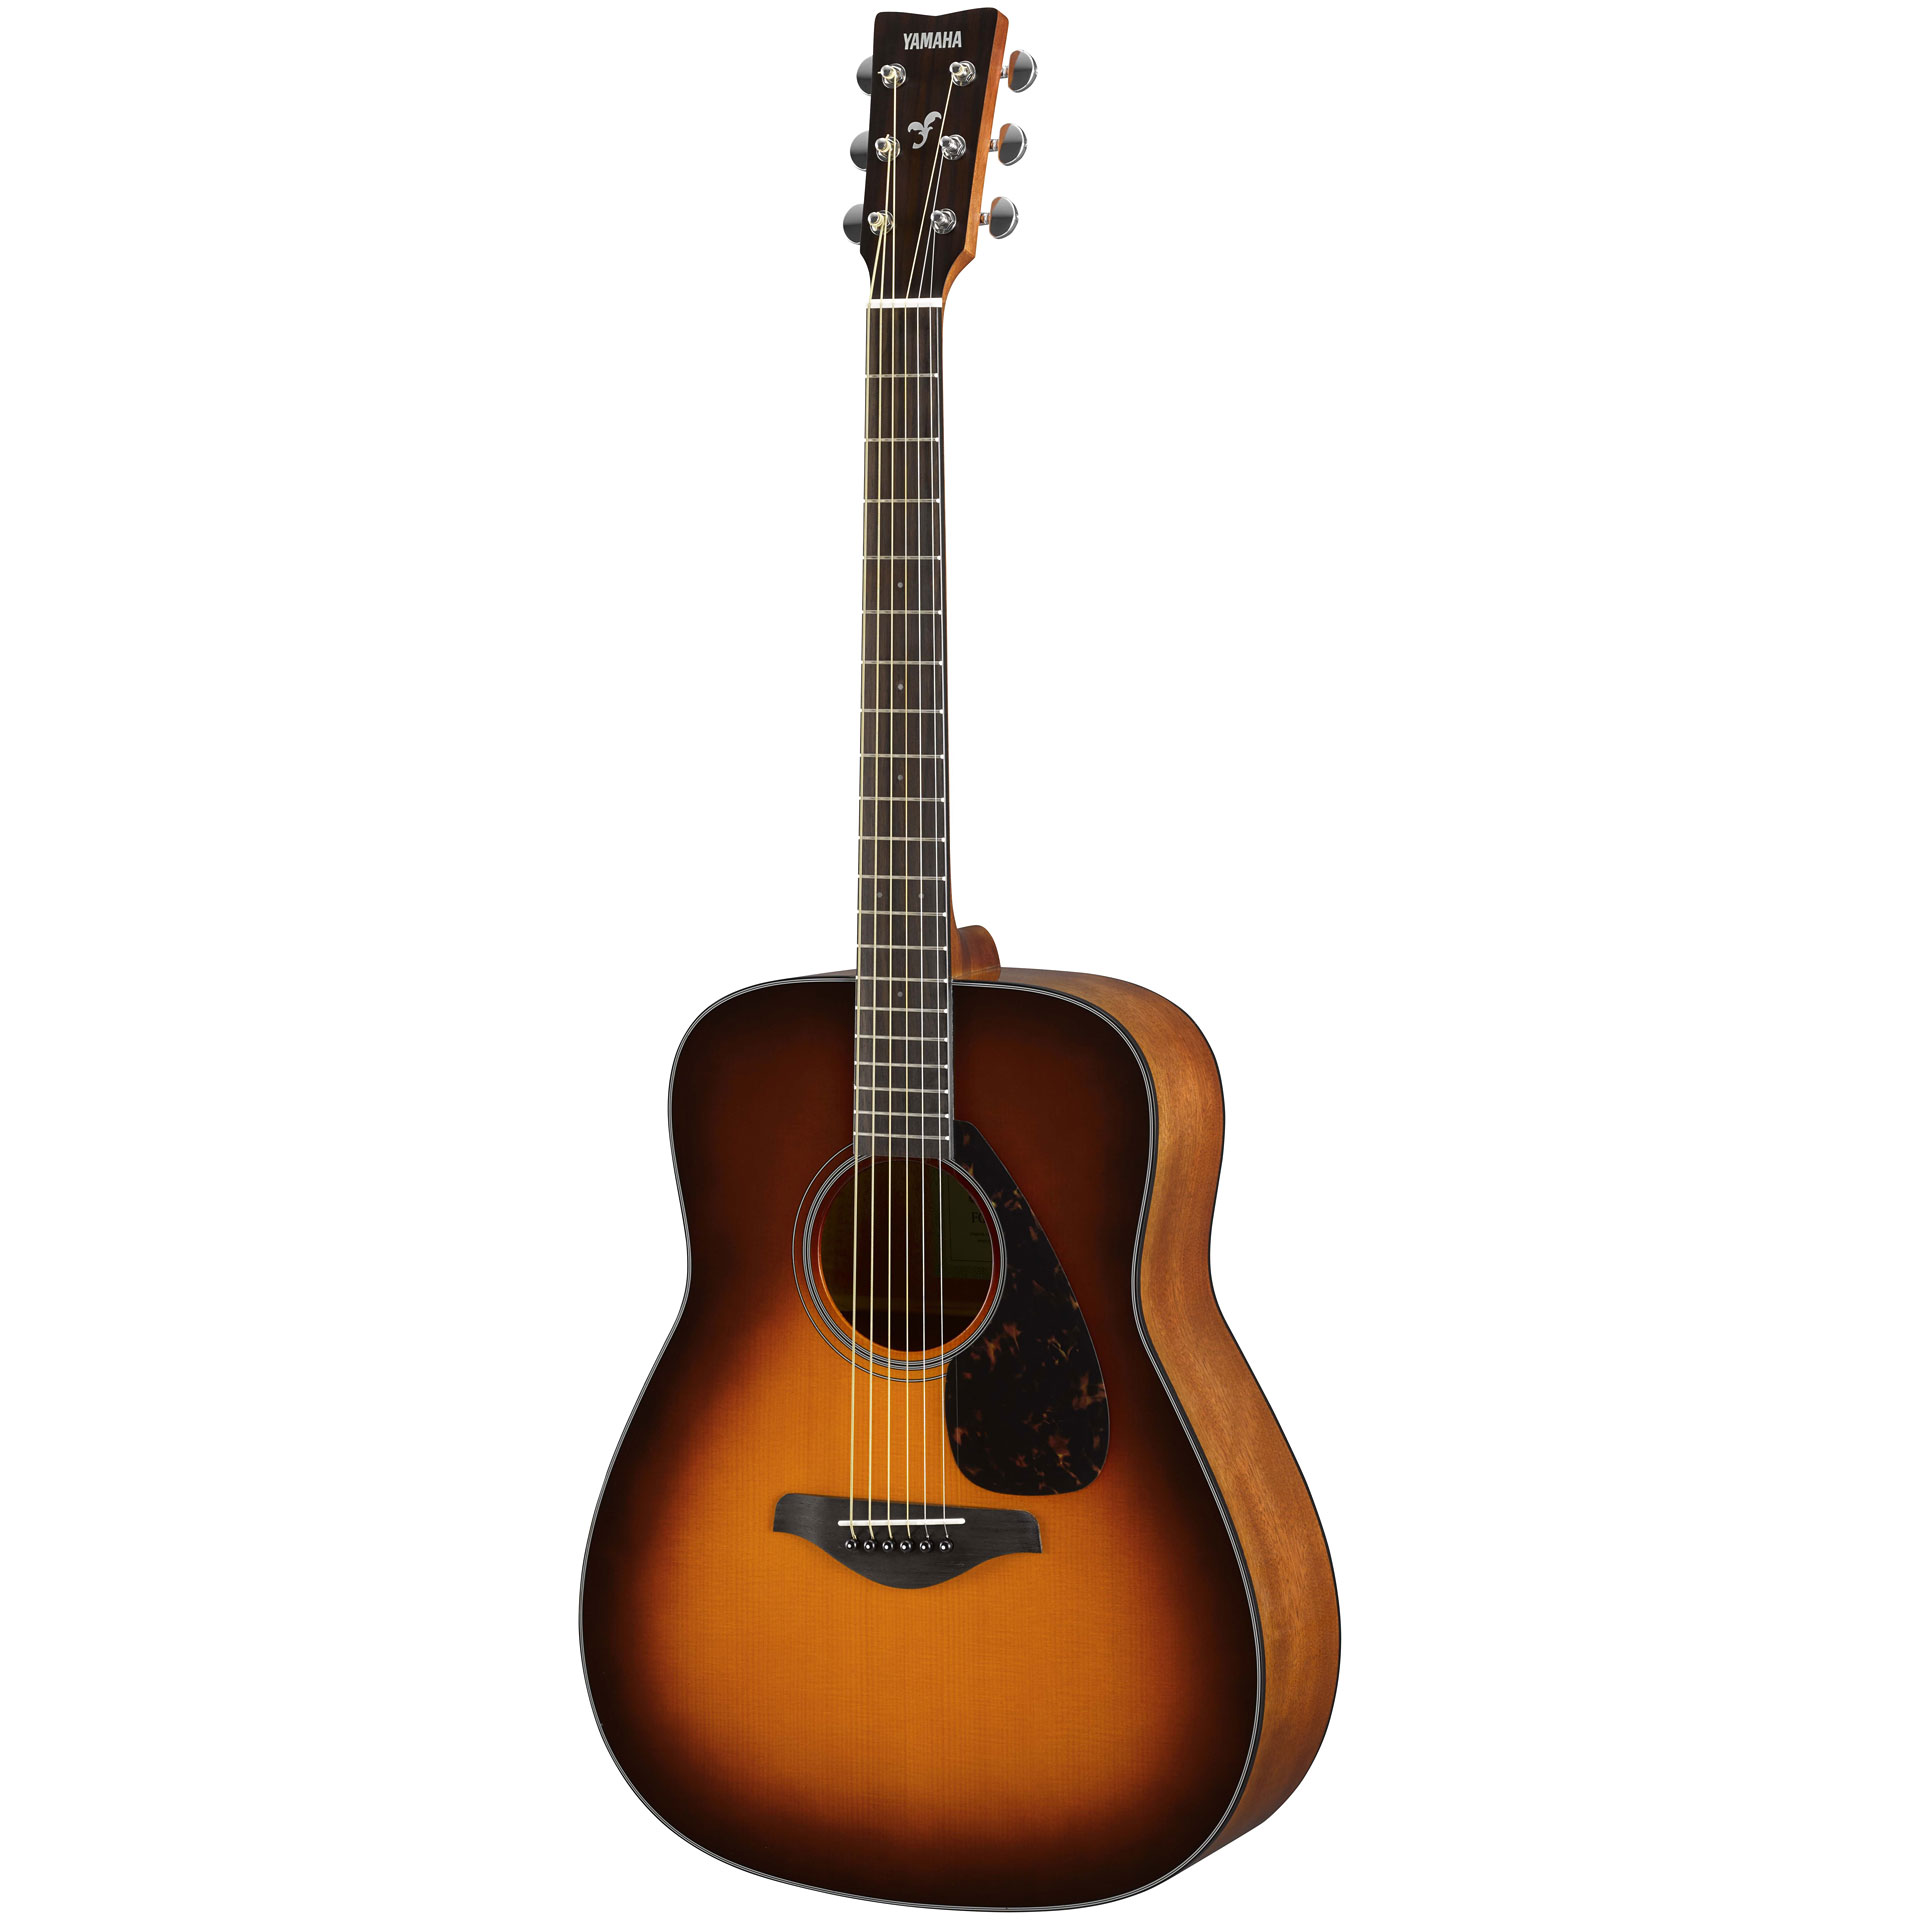 Yamaha fg800 bs acoustic guitar for Yamaha classic guitar